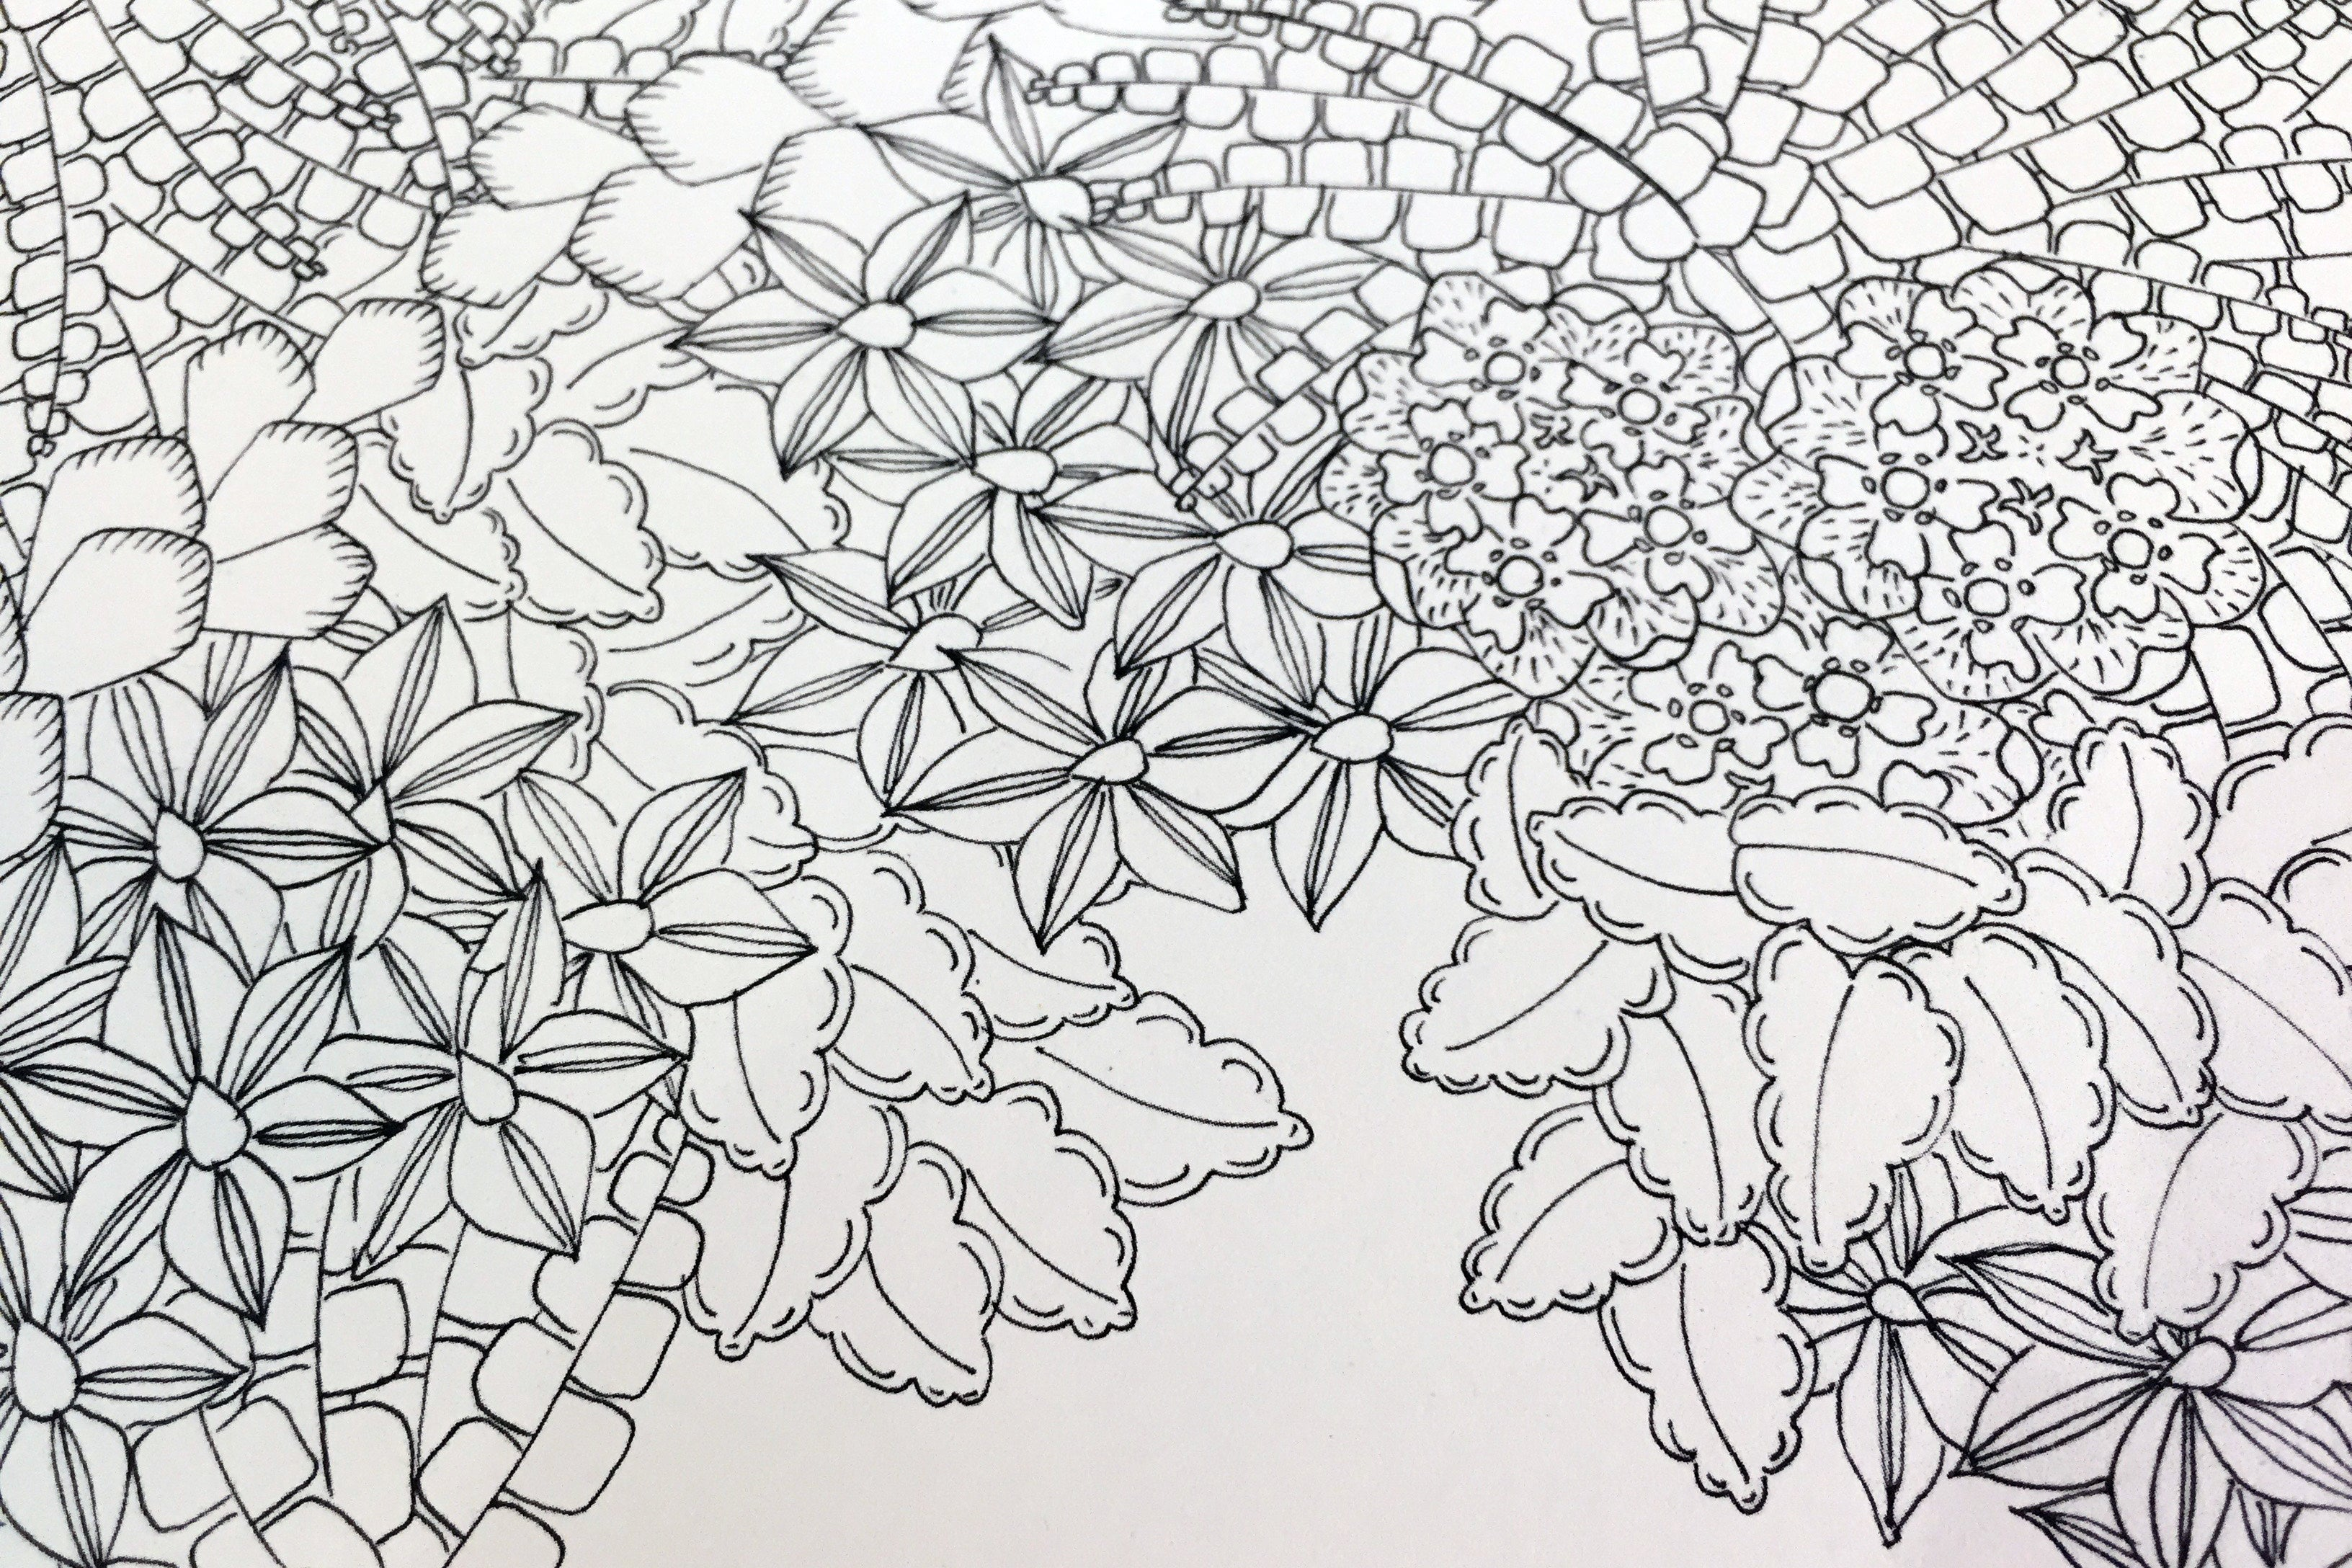 patterns of flora colouring book - Pattern Colouring Books